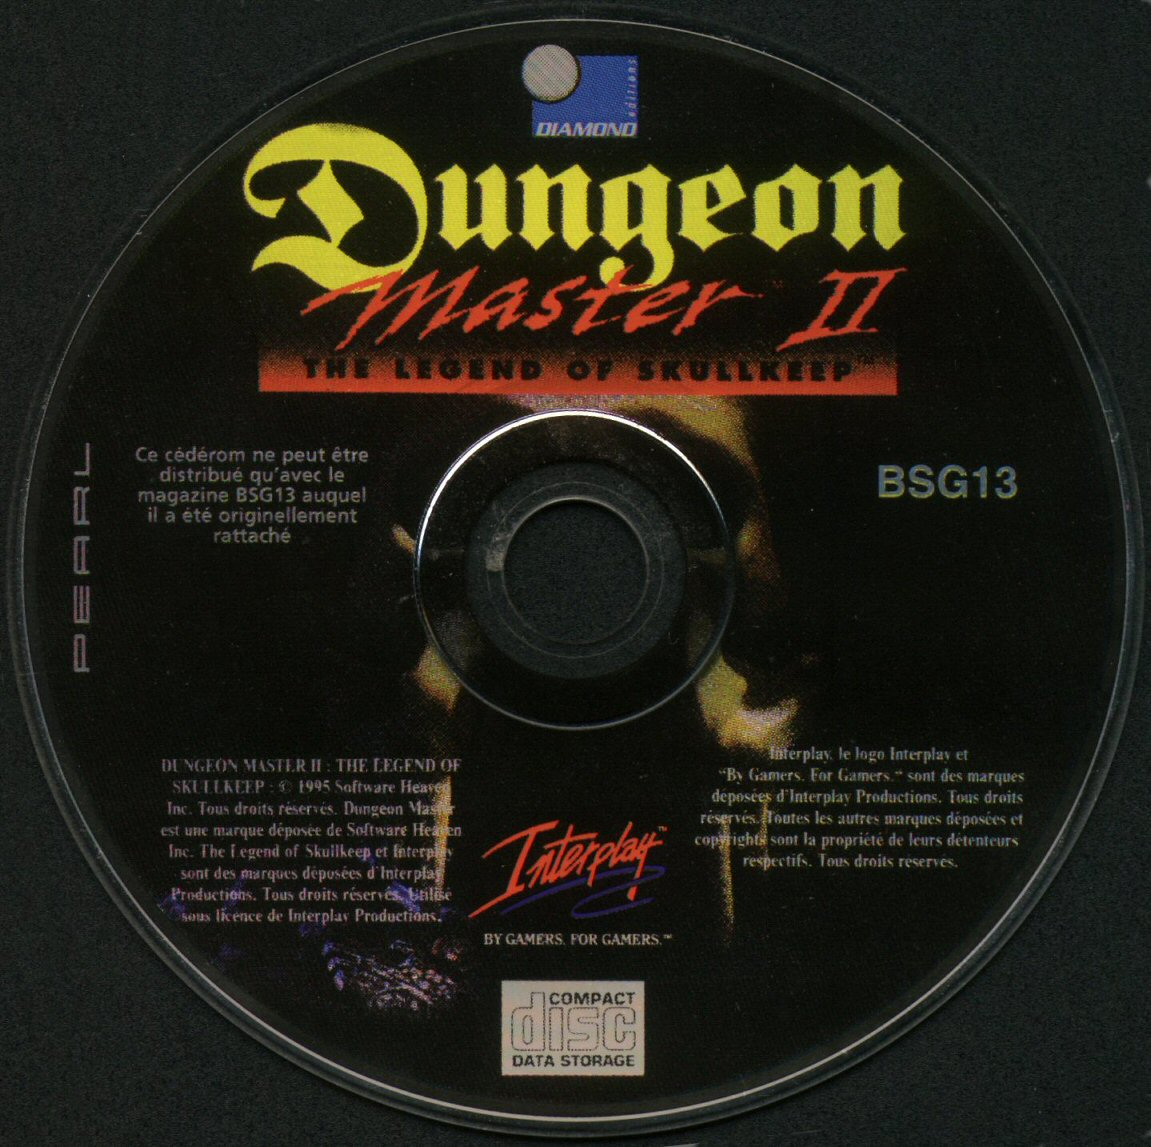 Dungeon Master II for PC (French) - CD version from French magazine 'Best Seller Games' Issue #13, September 1998 - CD